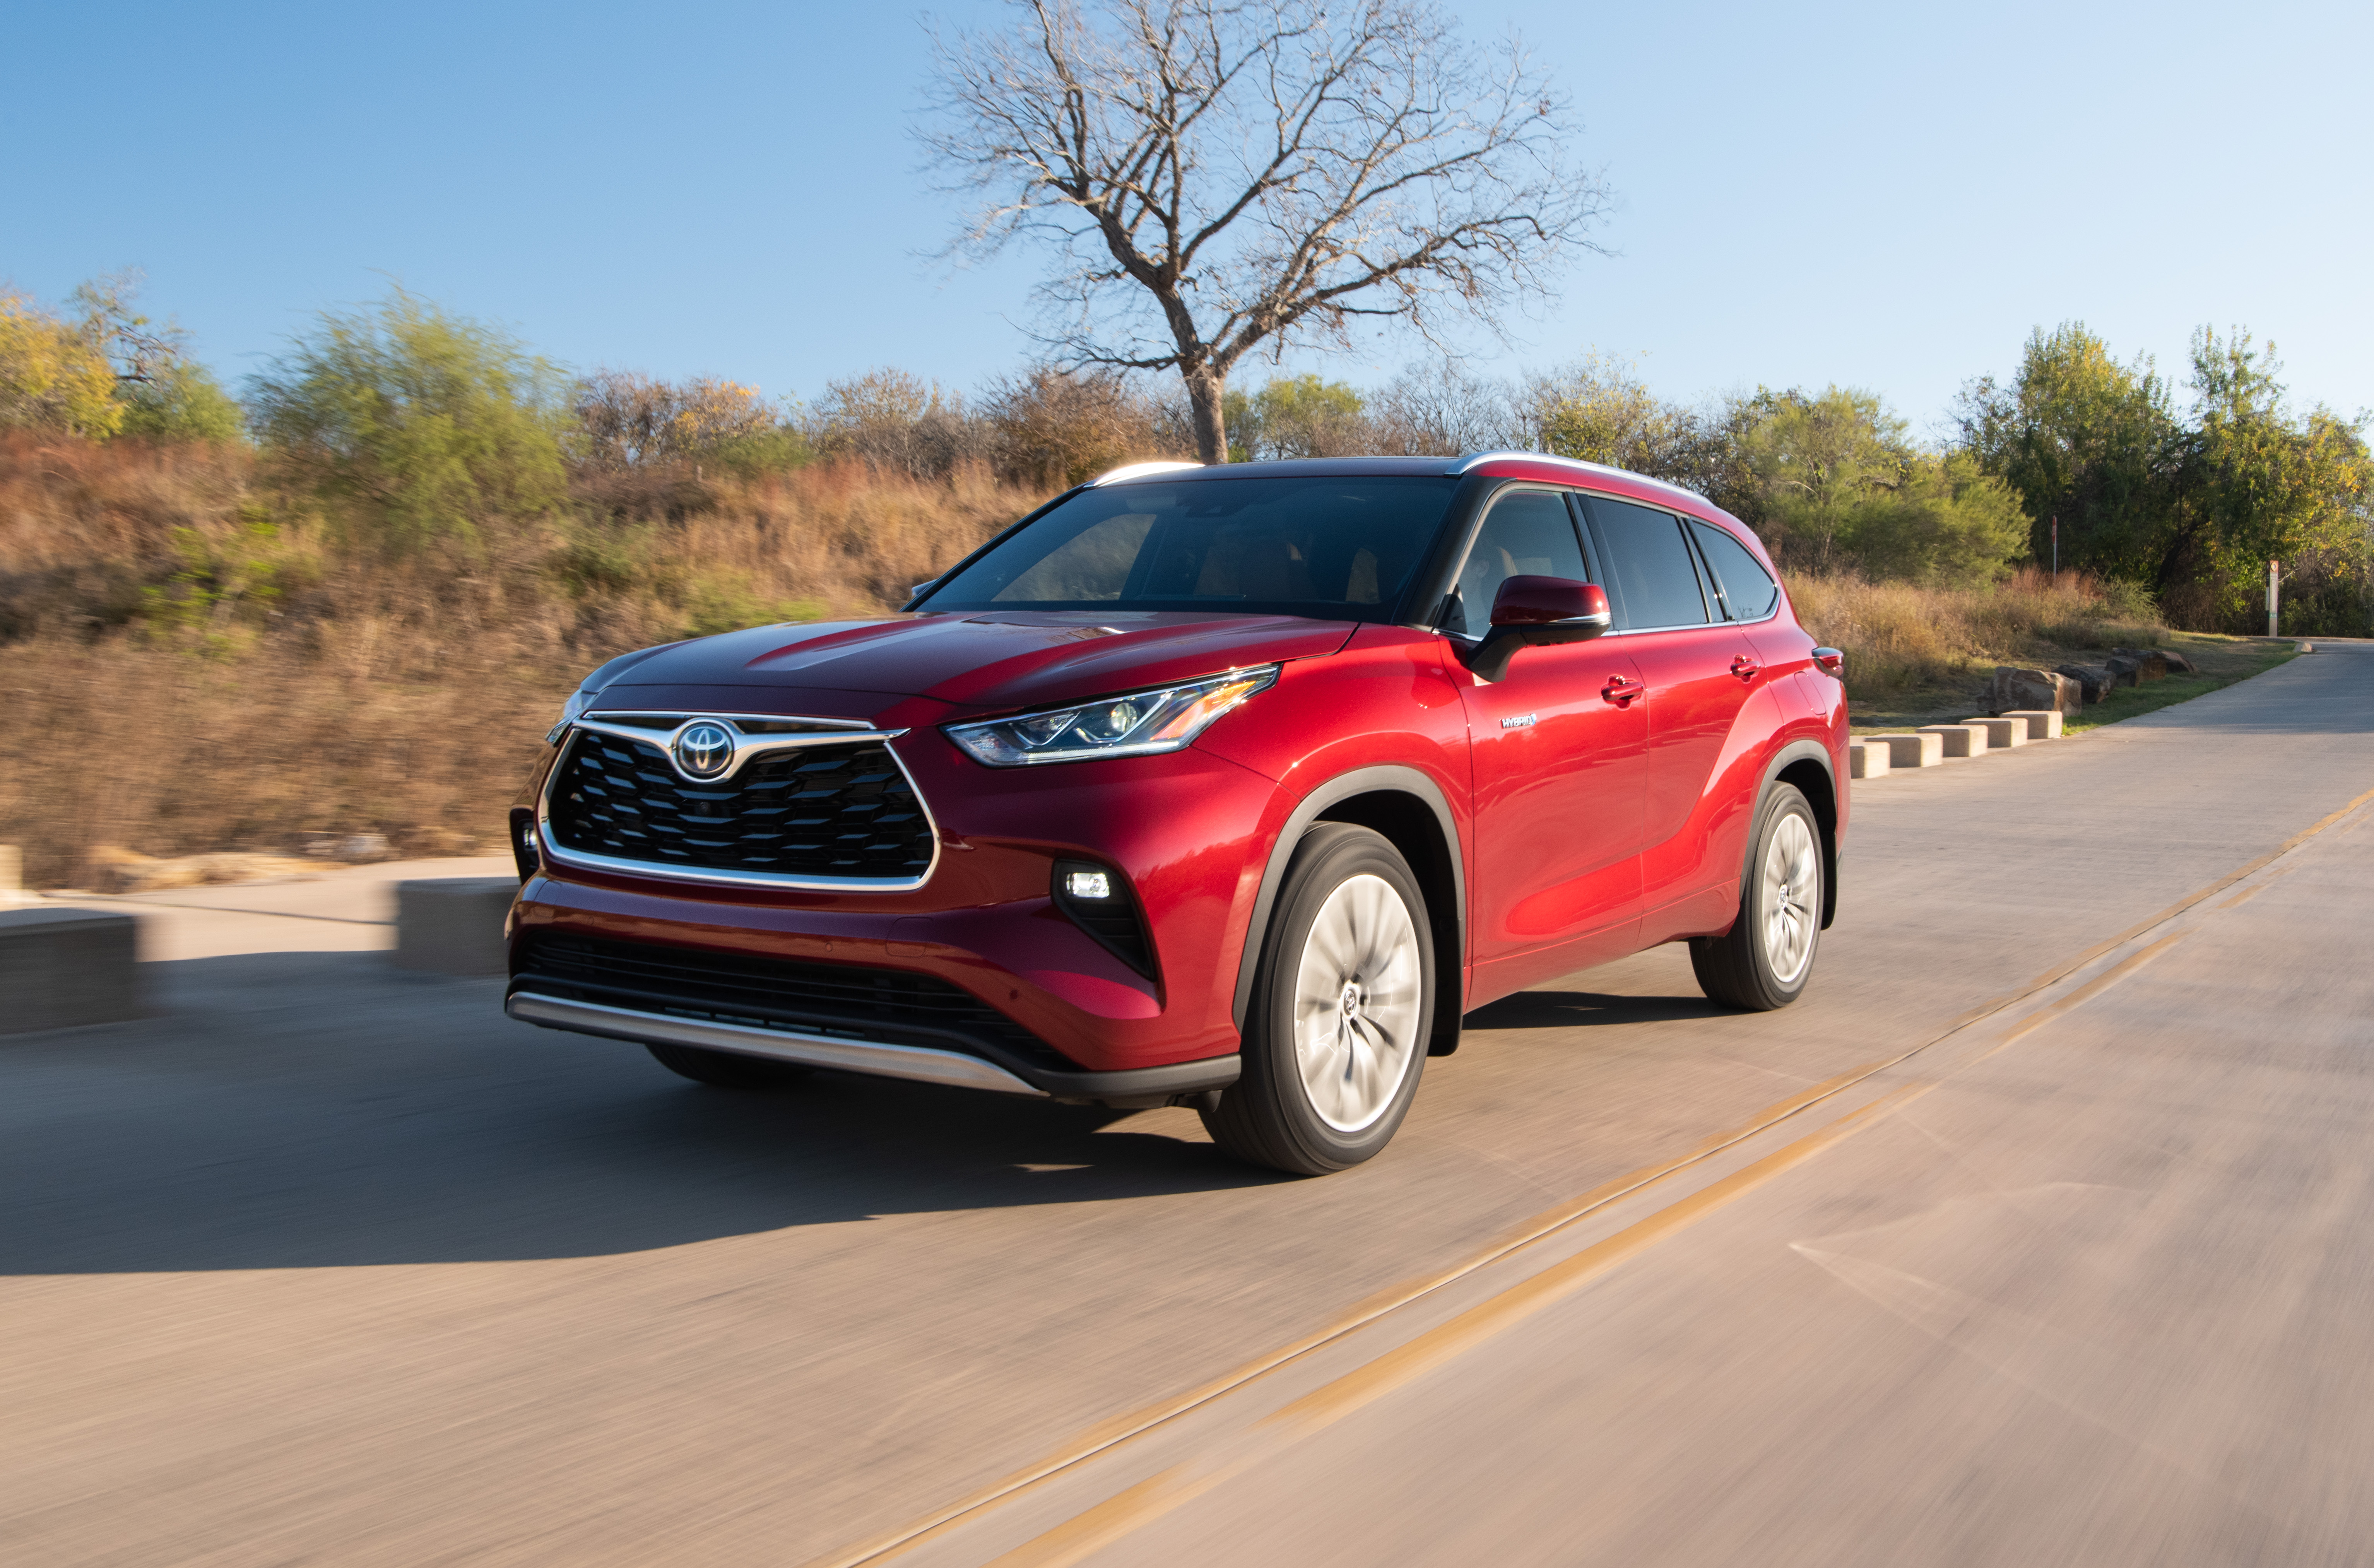 The complete ground-up upgrade of the Highlander was much needed, as the popular crossover began to see heavy competition from some excellent contenders